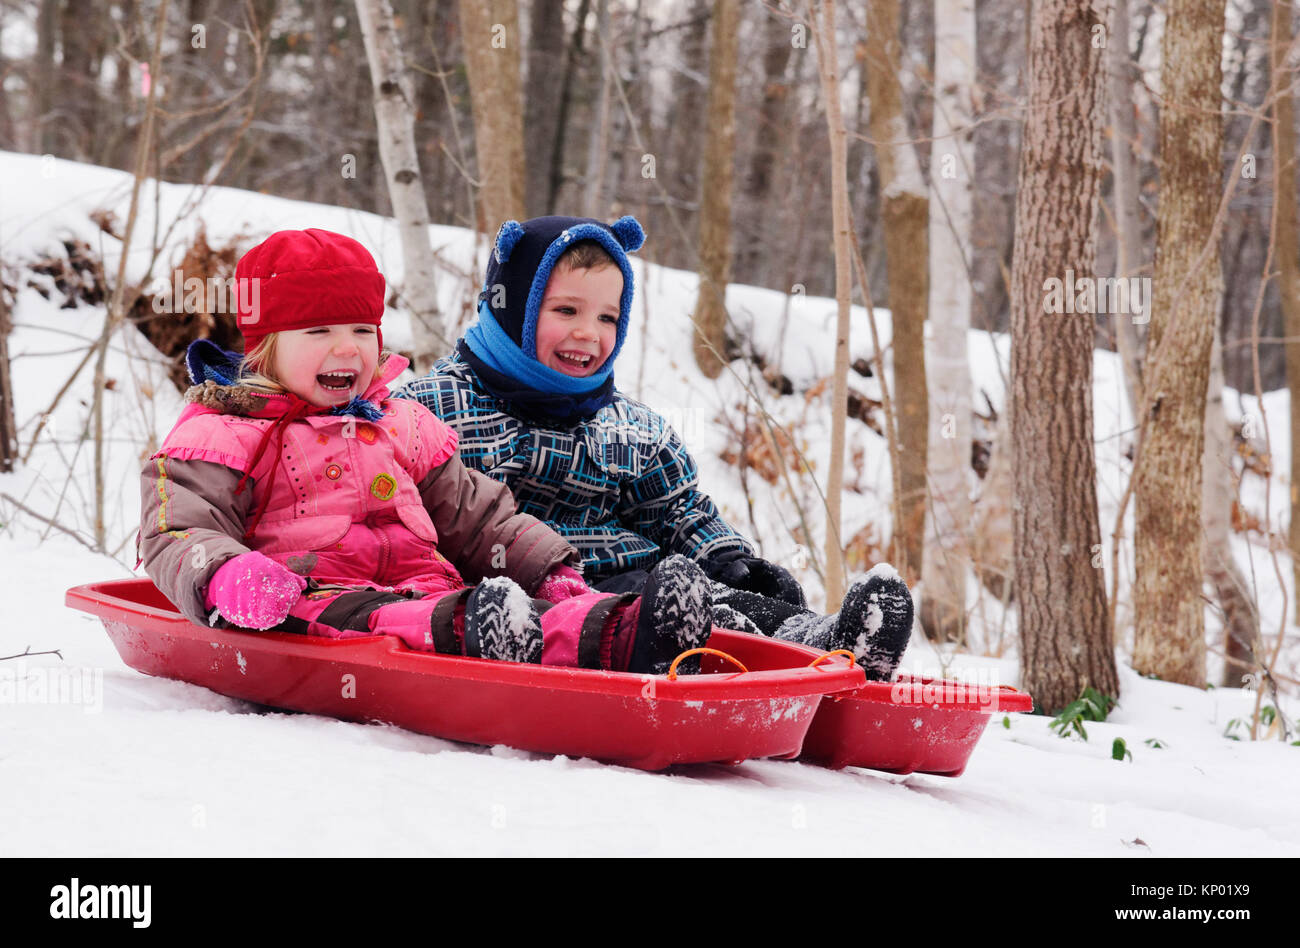 brother-and-sisters-5-and-3-yrs-old-sledging-together-in-quebec-in-KP01X9.jpg